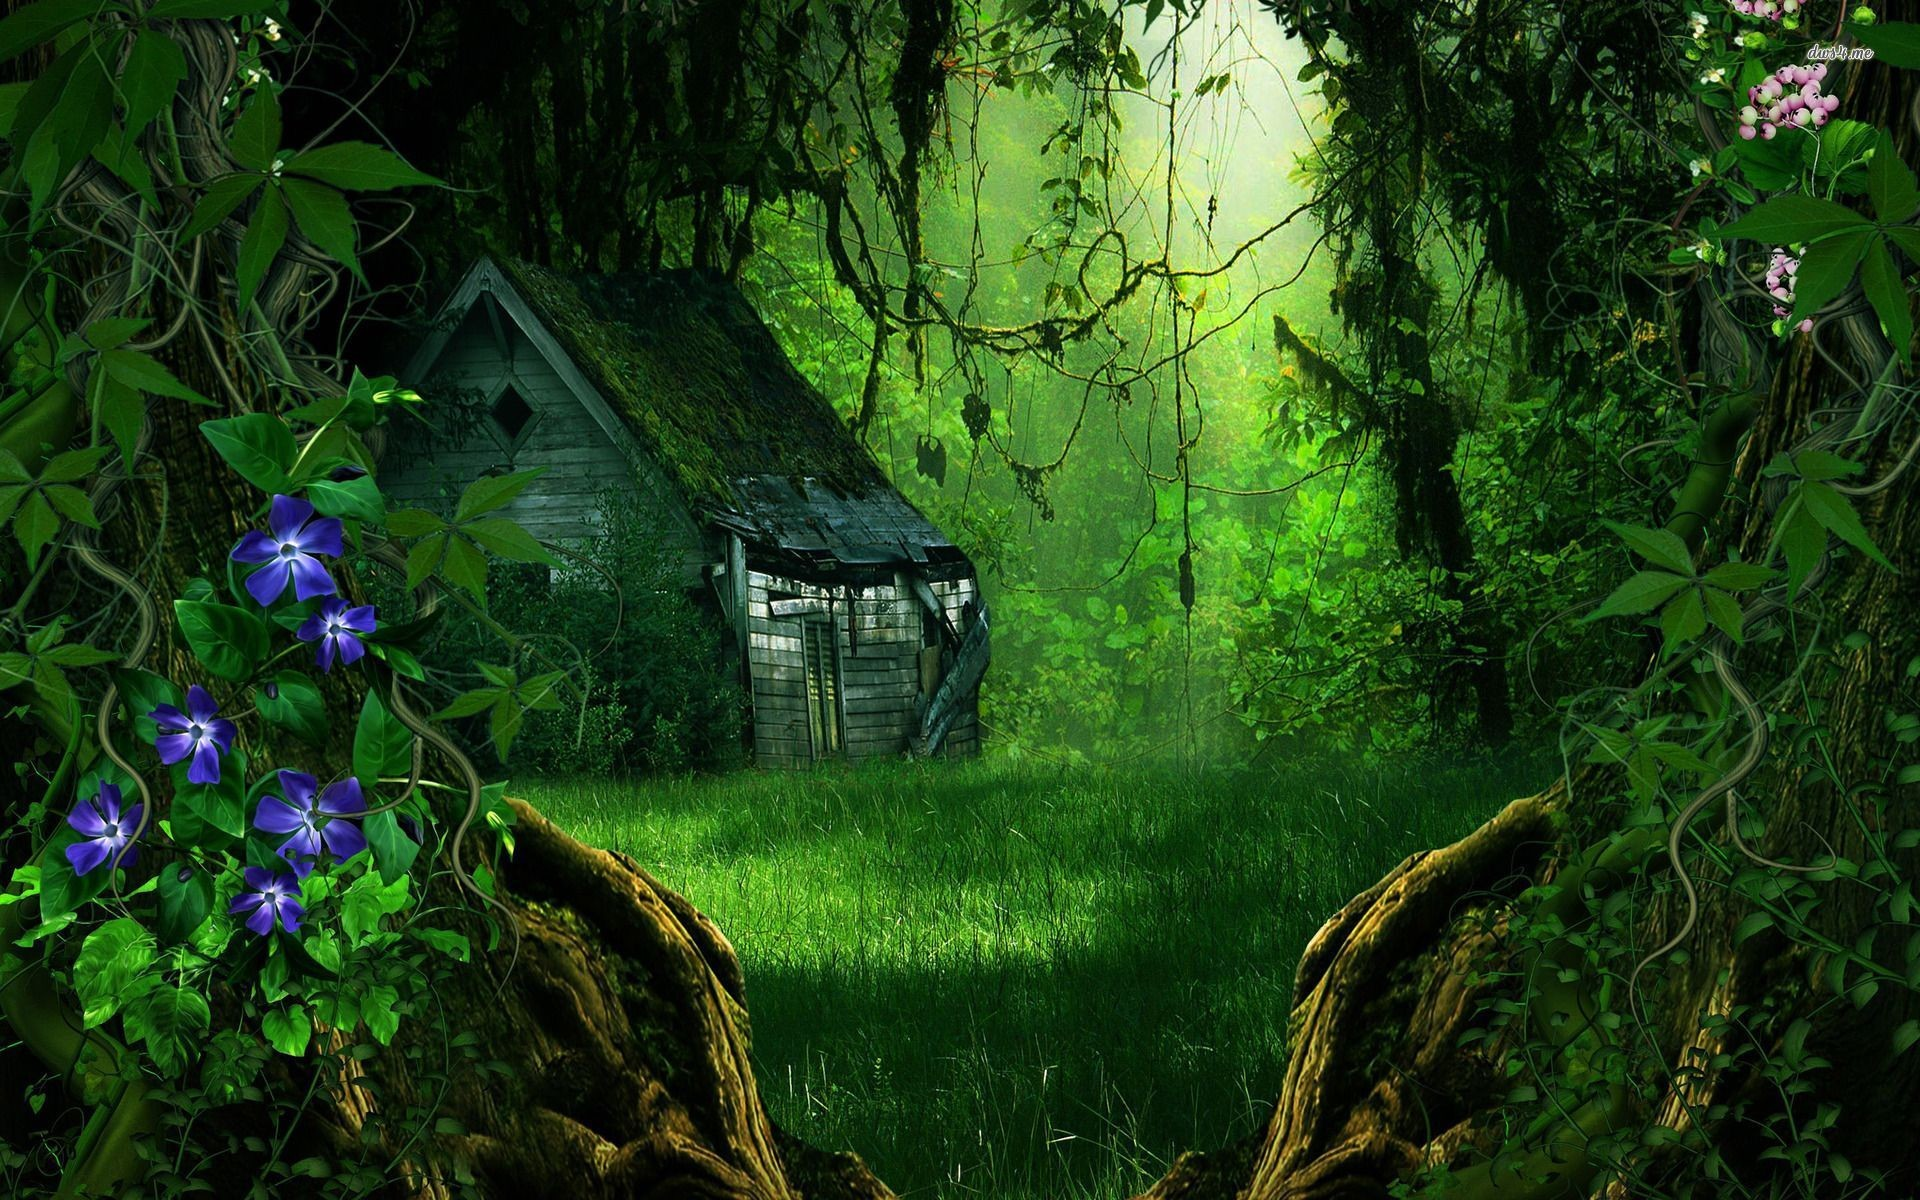 1920x1200 Abandoned house in the forest wallpaper - Fantasy wallpapers - #18774